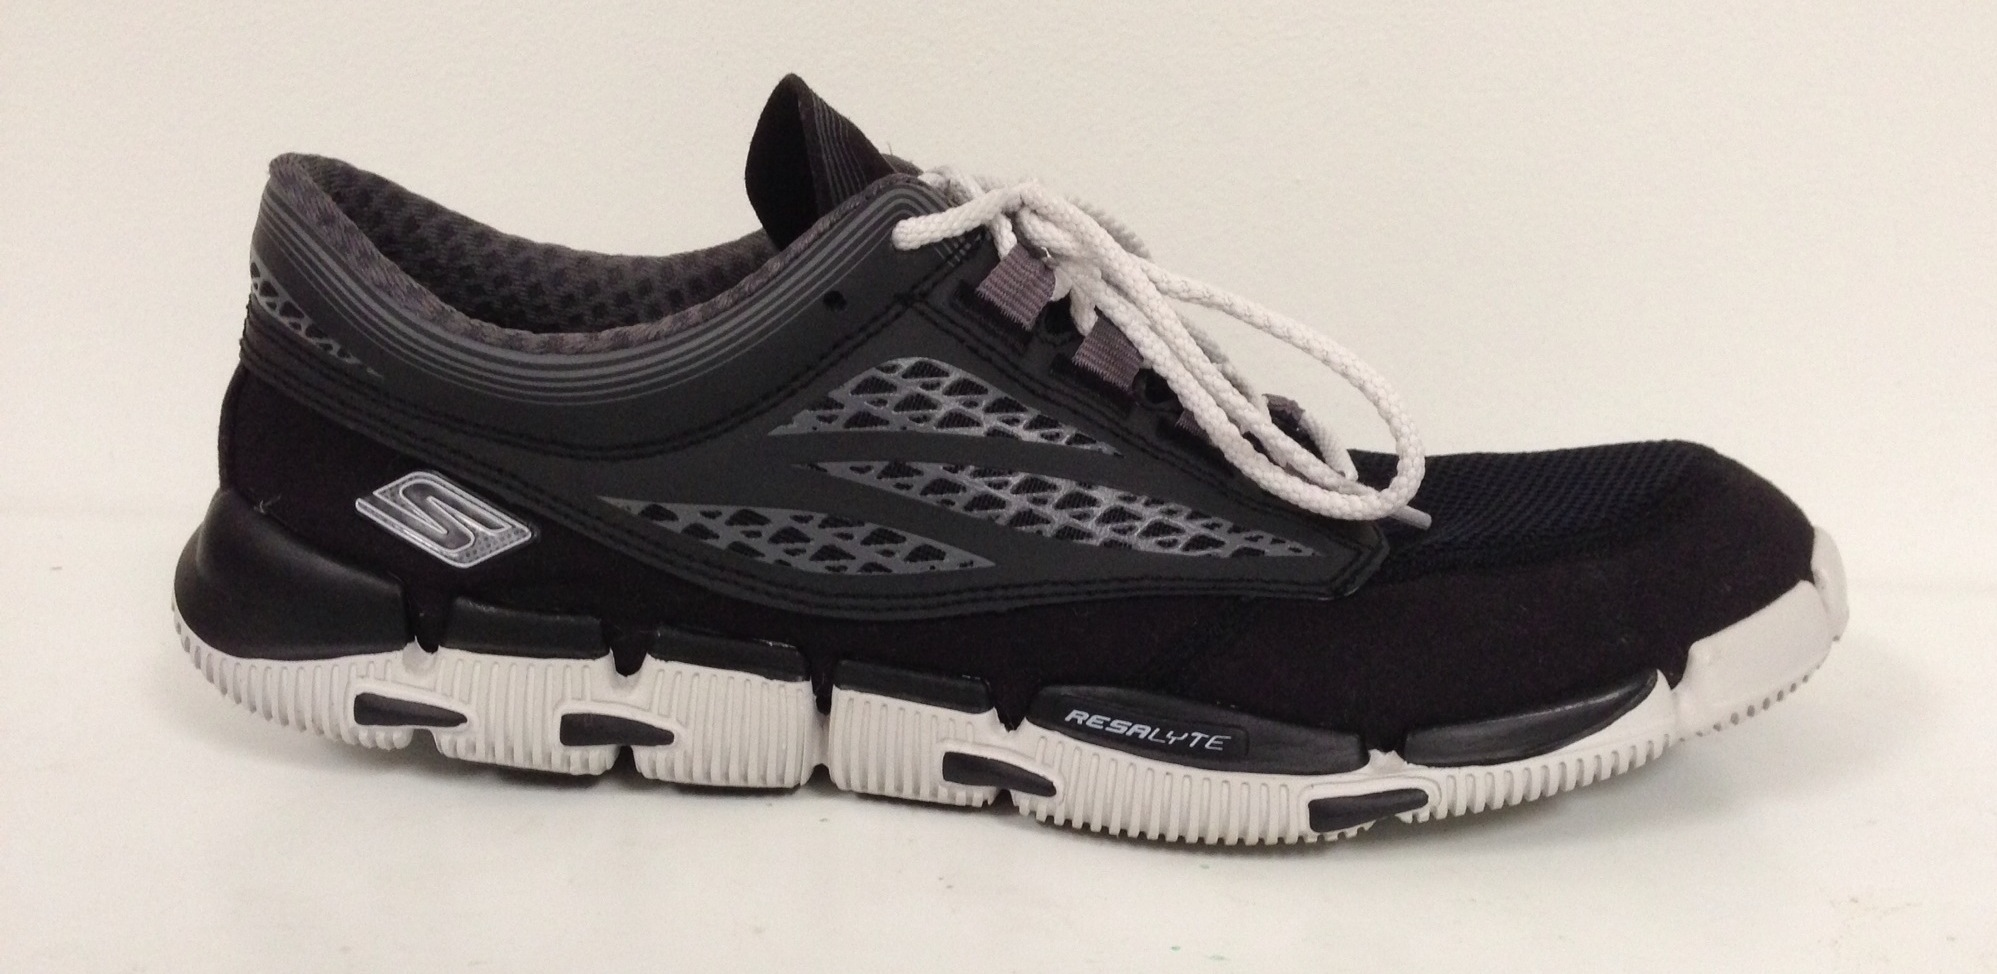 1d588c8848d4 Review of the Skechers GObionic Minimalist Running Shoe - Dr. Nick s ...